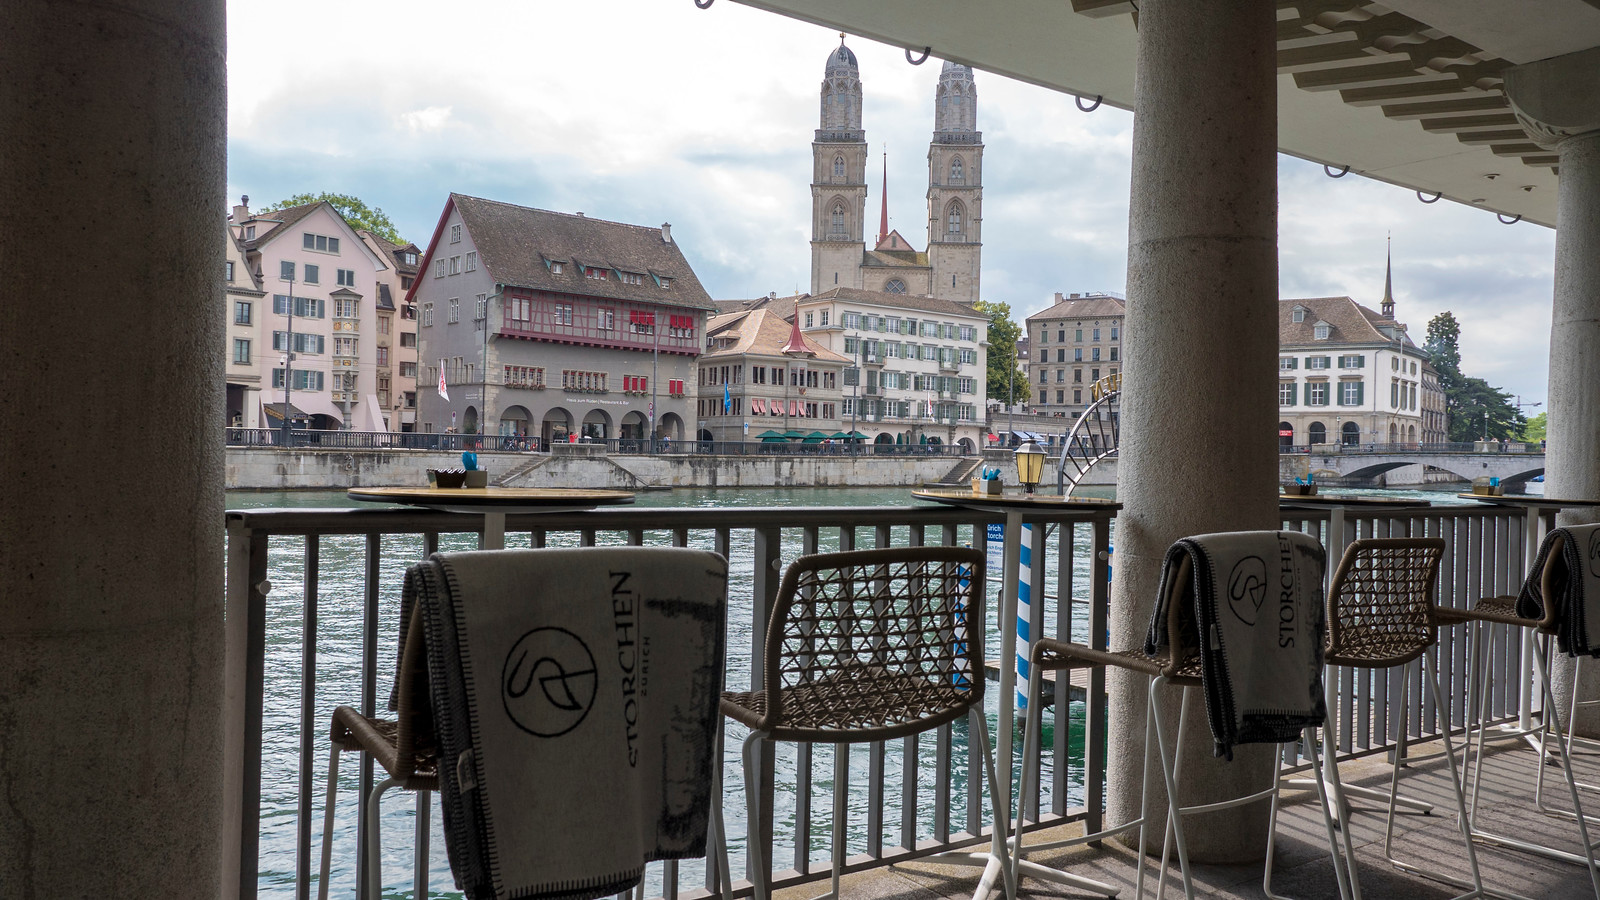 The terrace on the river at the Hotel Storchen Zurich.